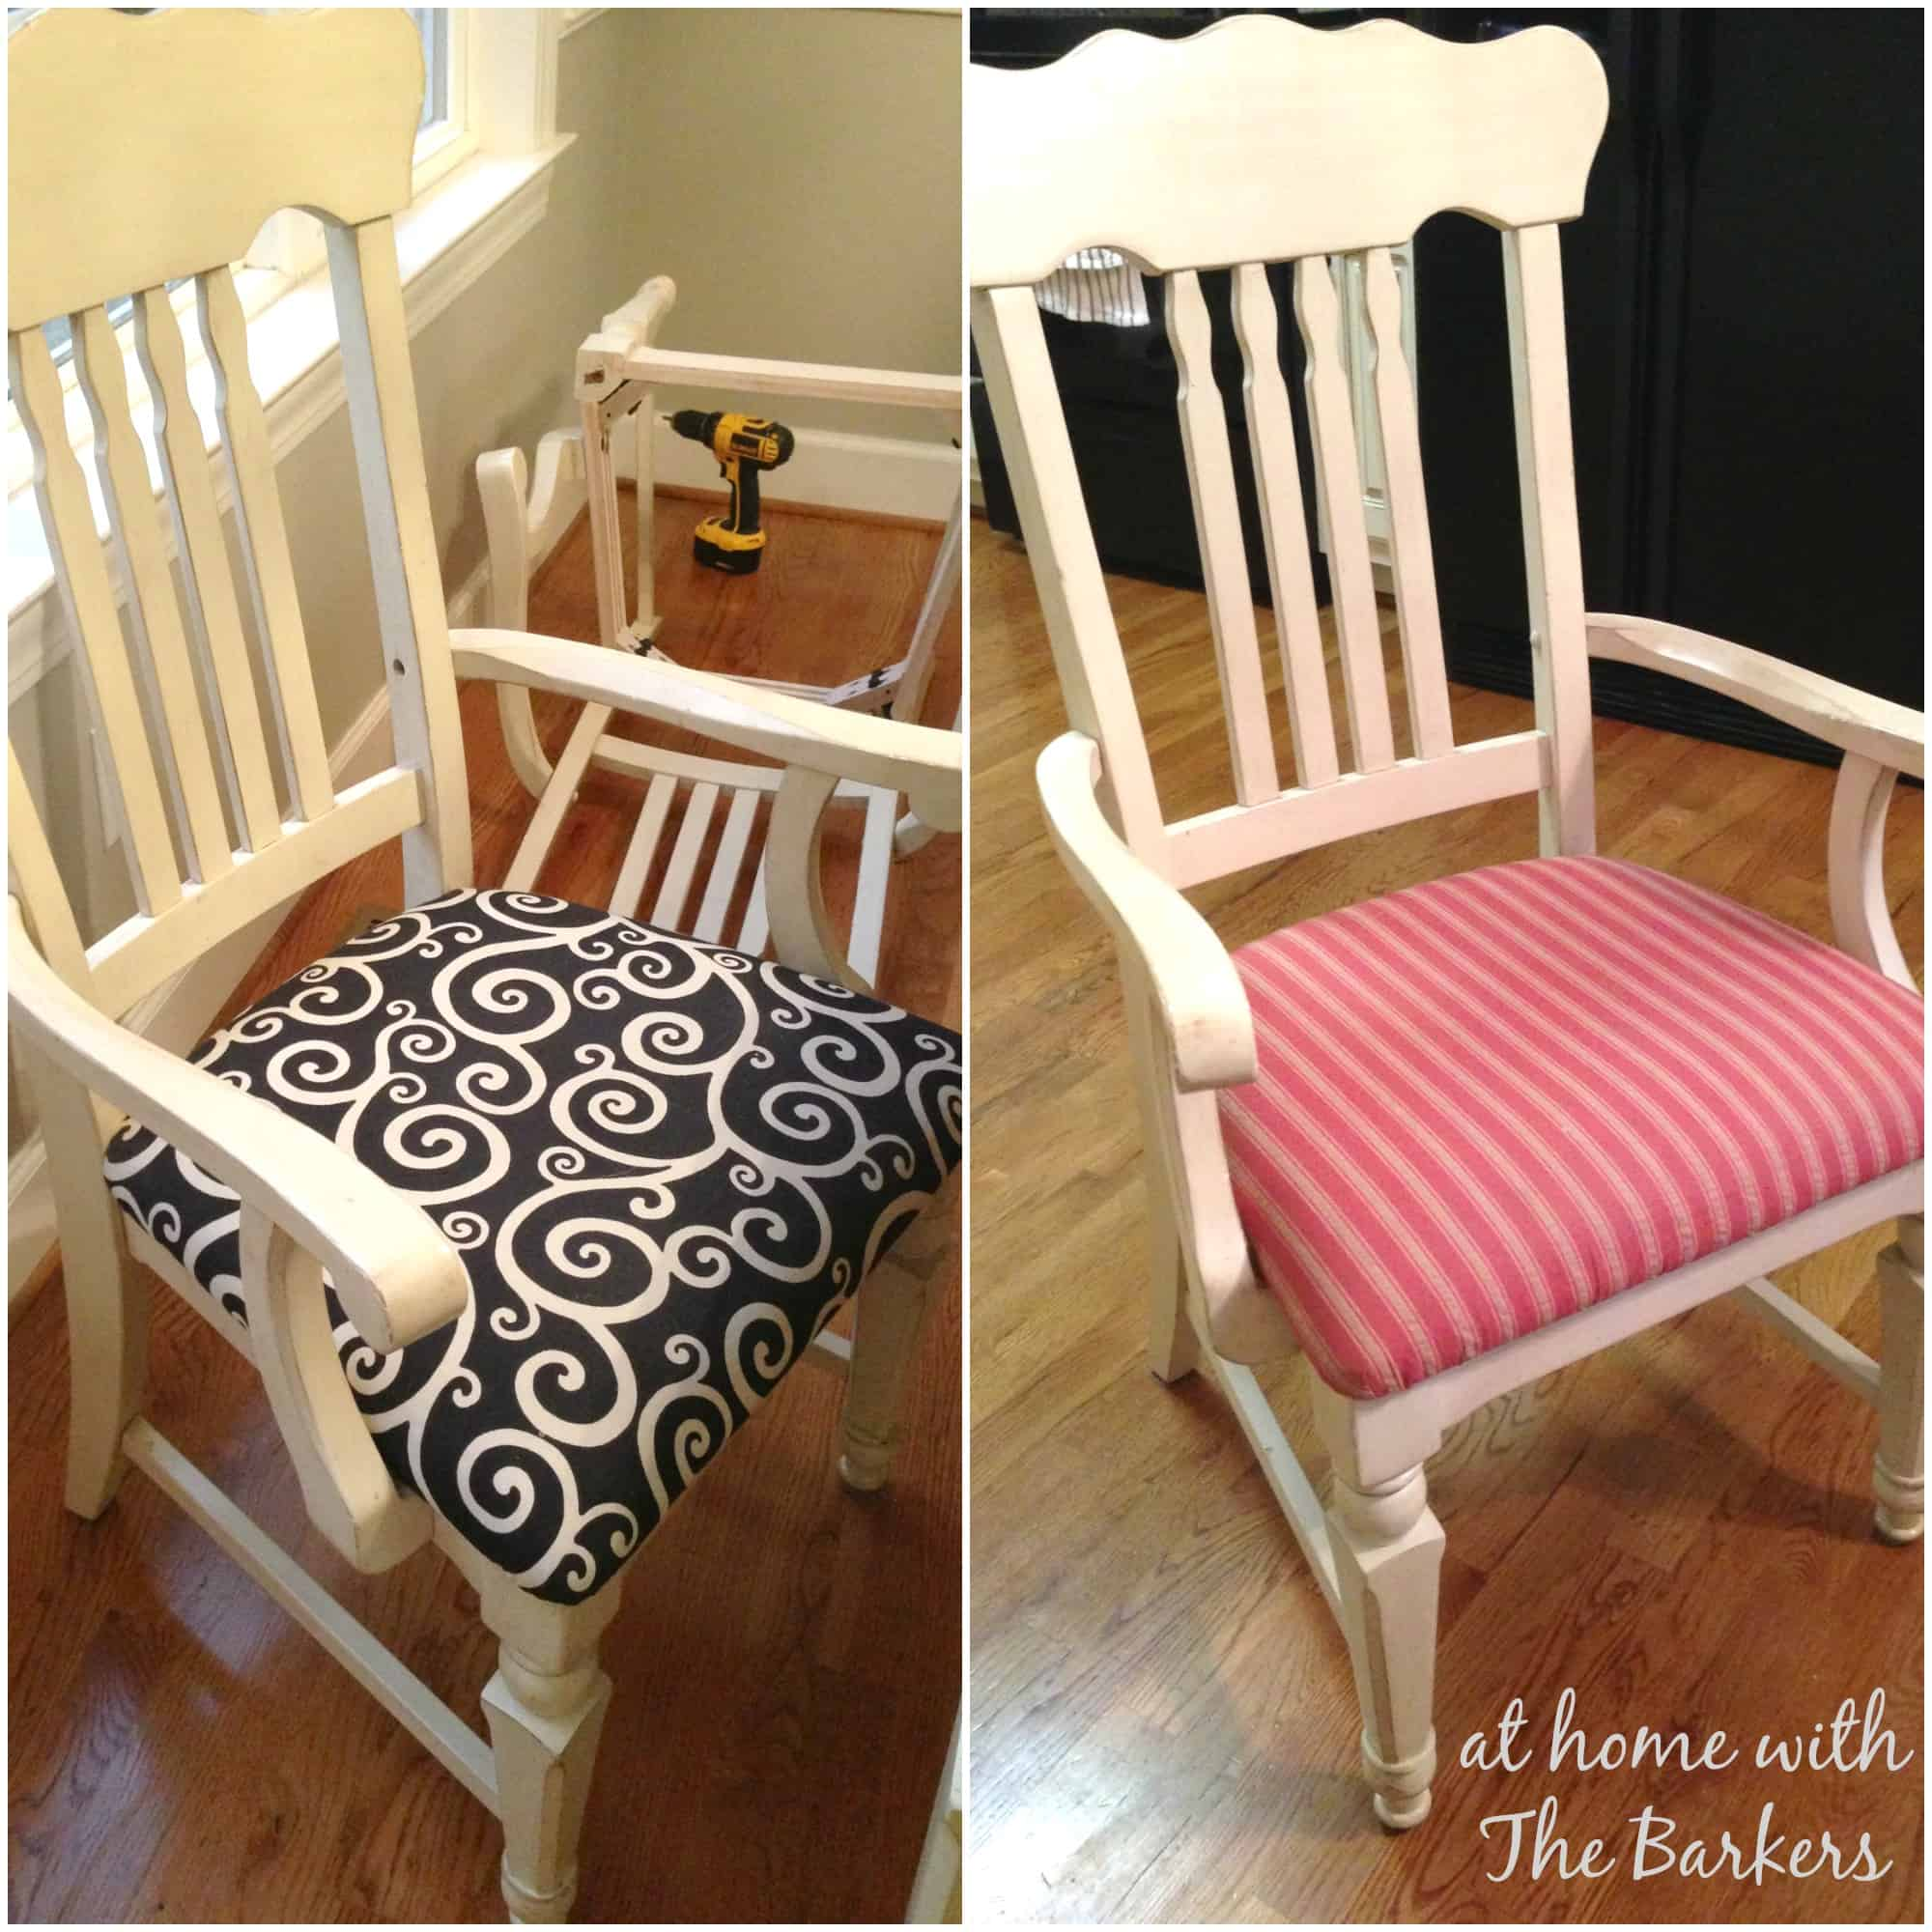 Kitchen Chair Fabric Layers At Home With The Barkers